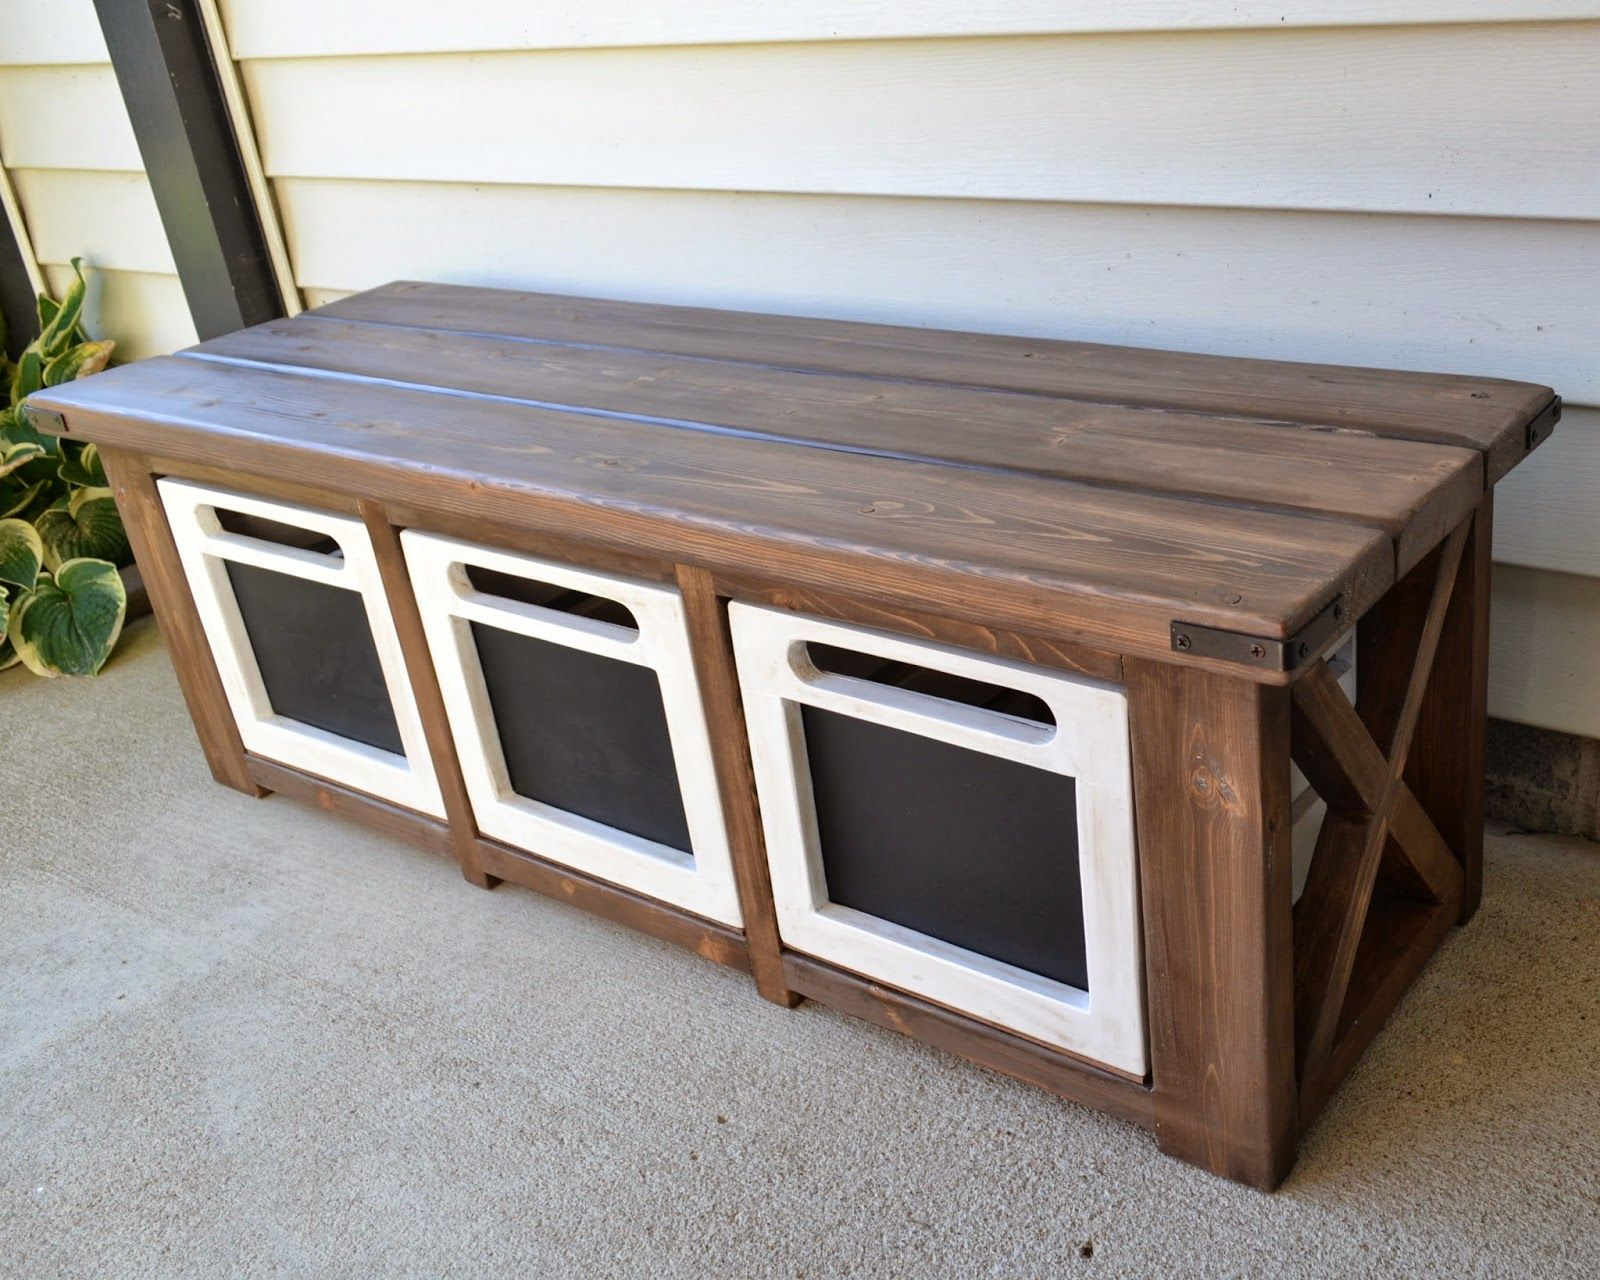 Custom Entryway Bench With Chalkboard Crates Rustic Storage Bench Diy Storage Bench Shoe Storage Bench Entryway